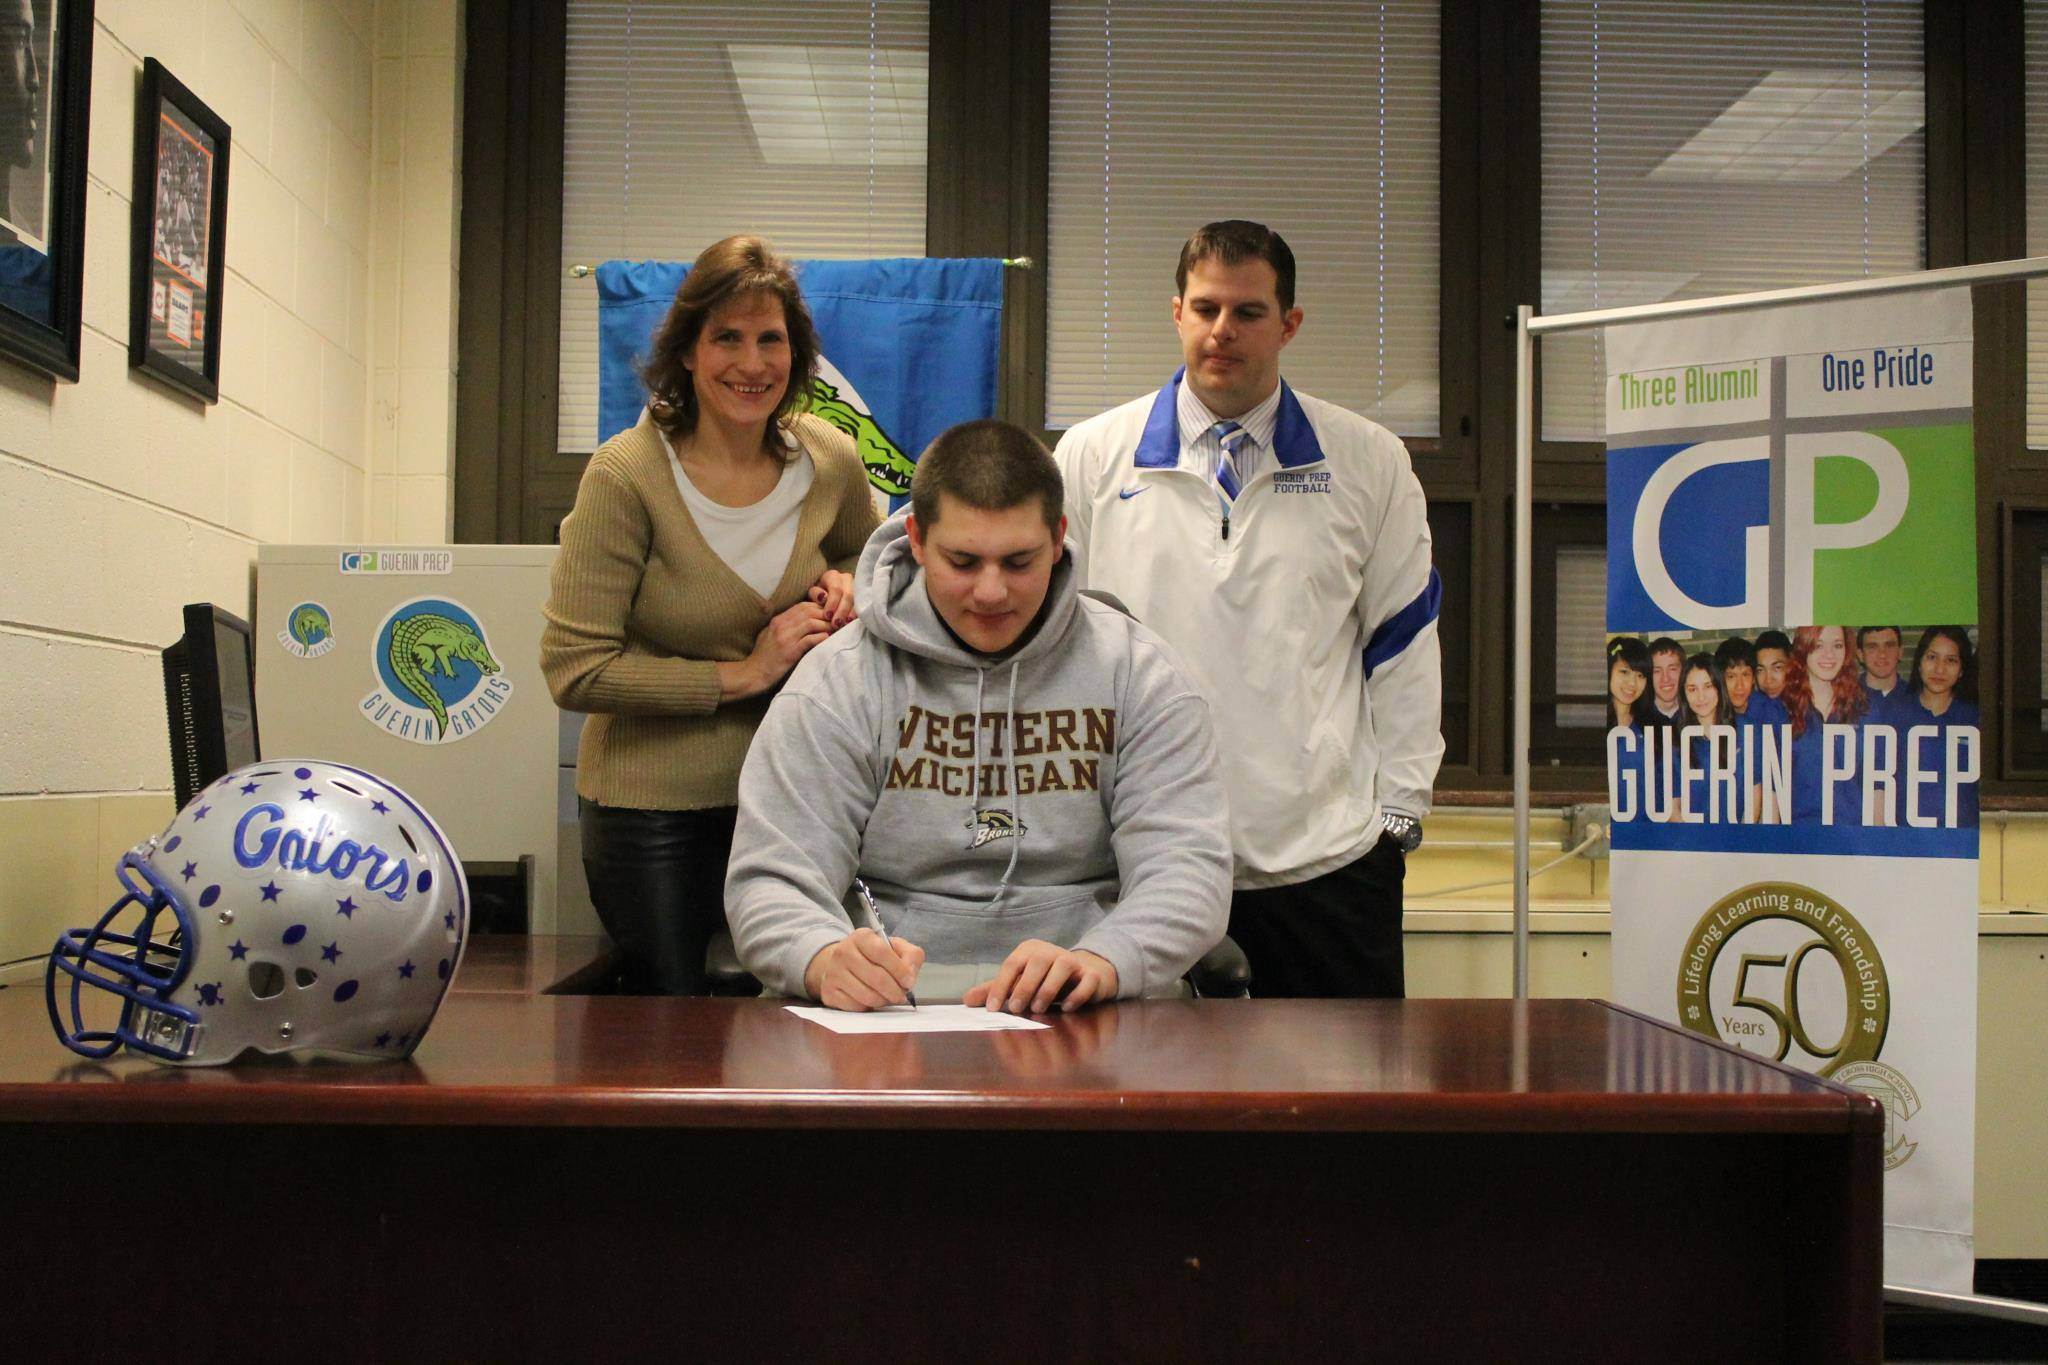 Guerin Prep senior Kristof Ifkovits signs his Letter of Intent to play Division 1 football at Western Michigan University.